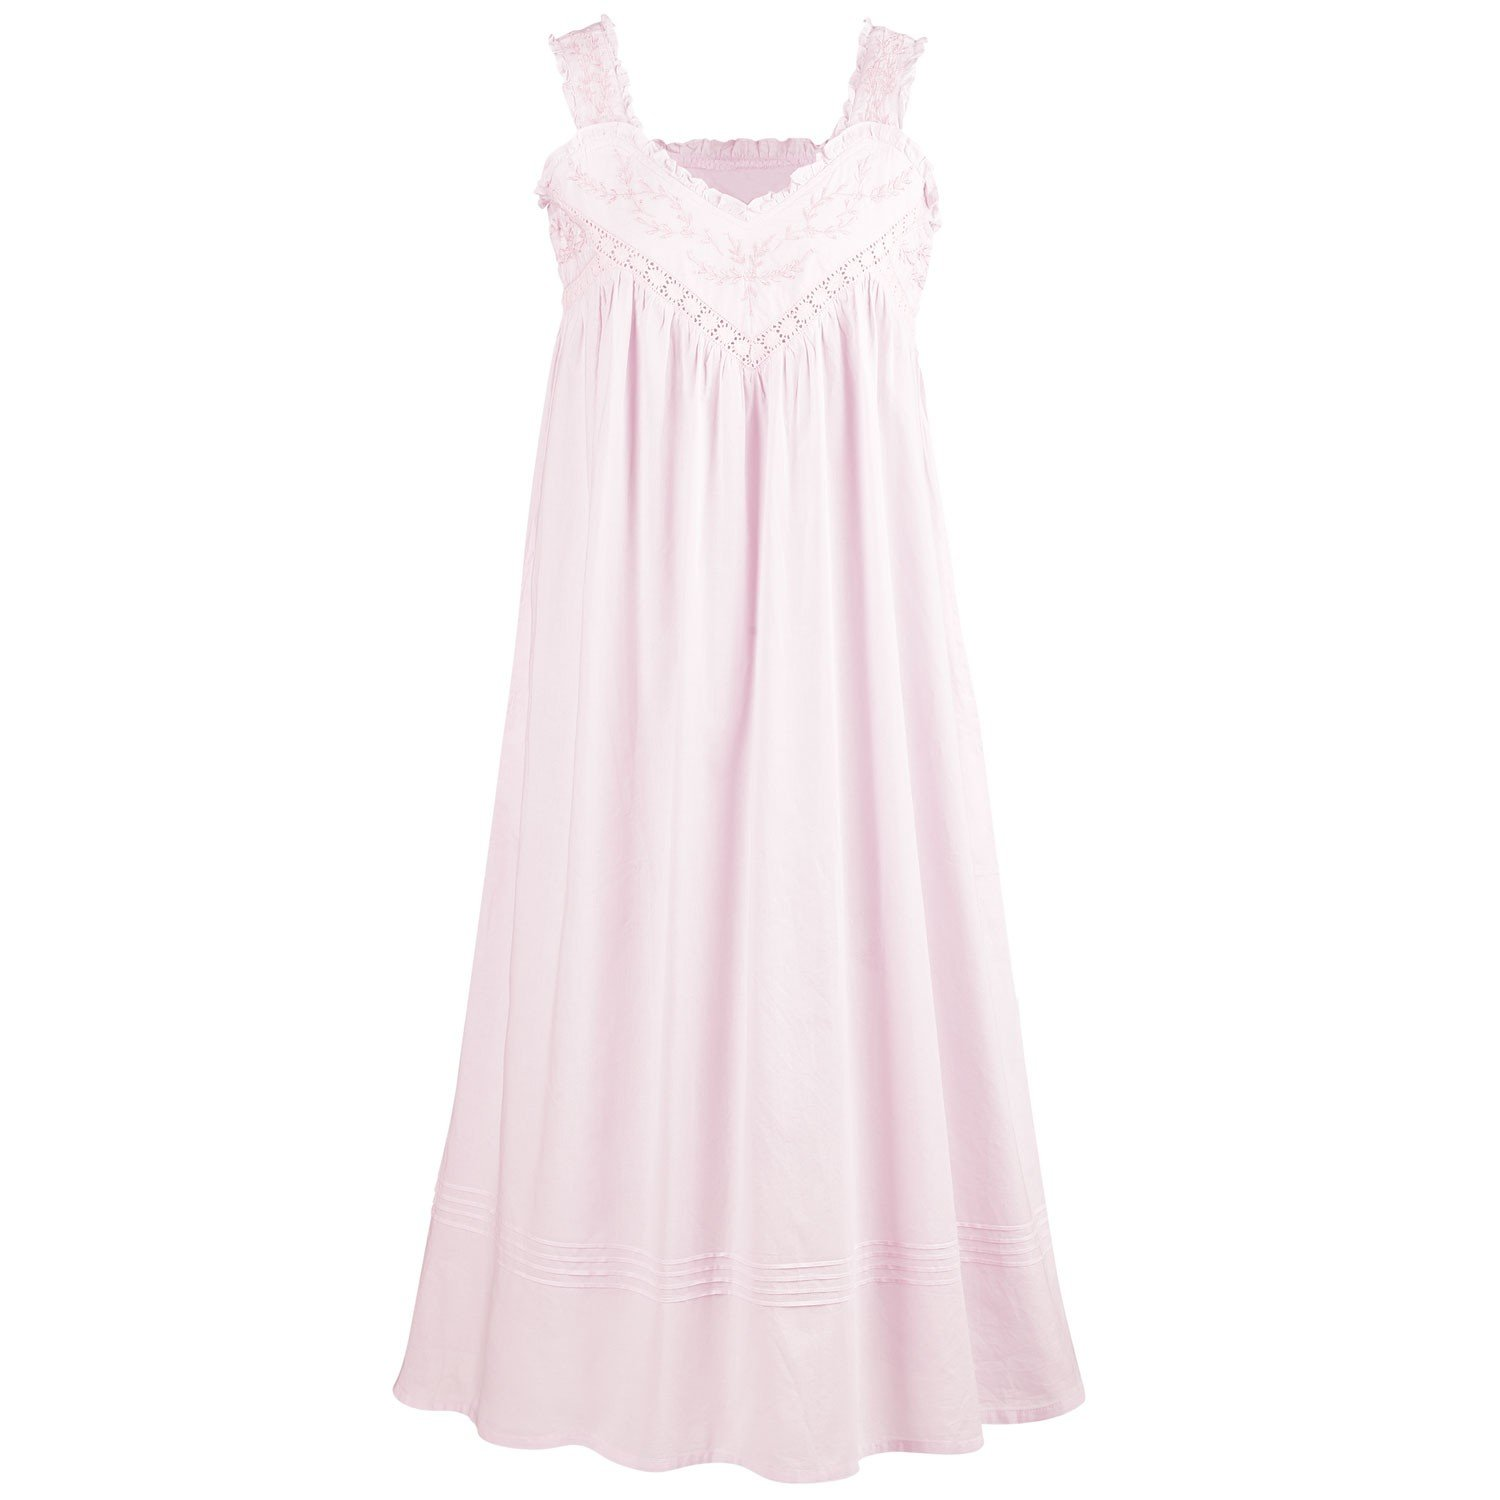 La Cera Cotton Chemise - Lace V-Neck Nightgown with Pockets Nightgown - Pink - 2X